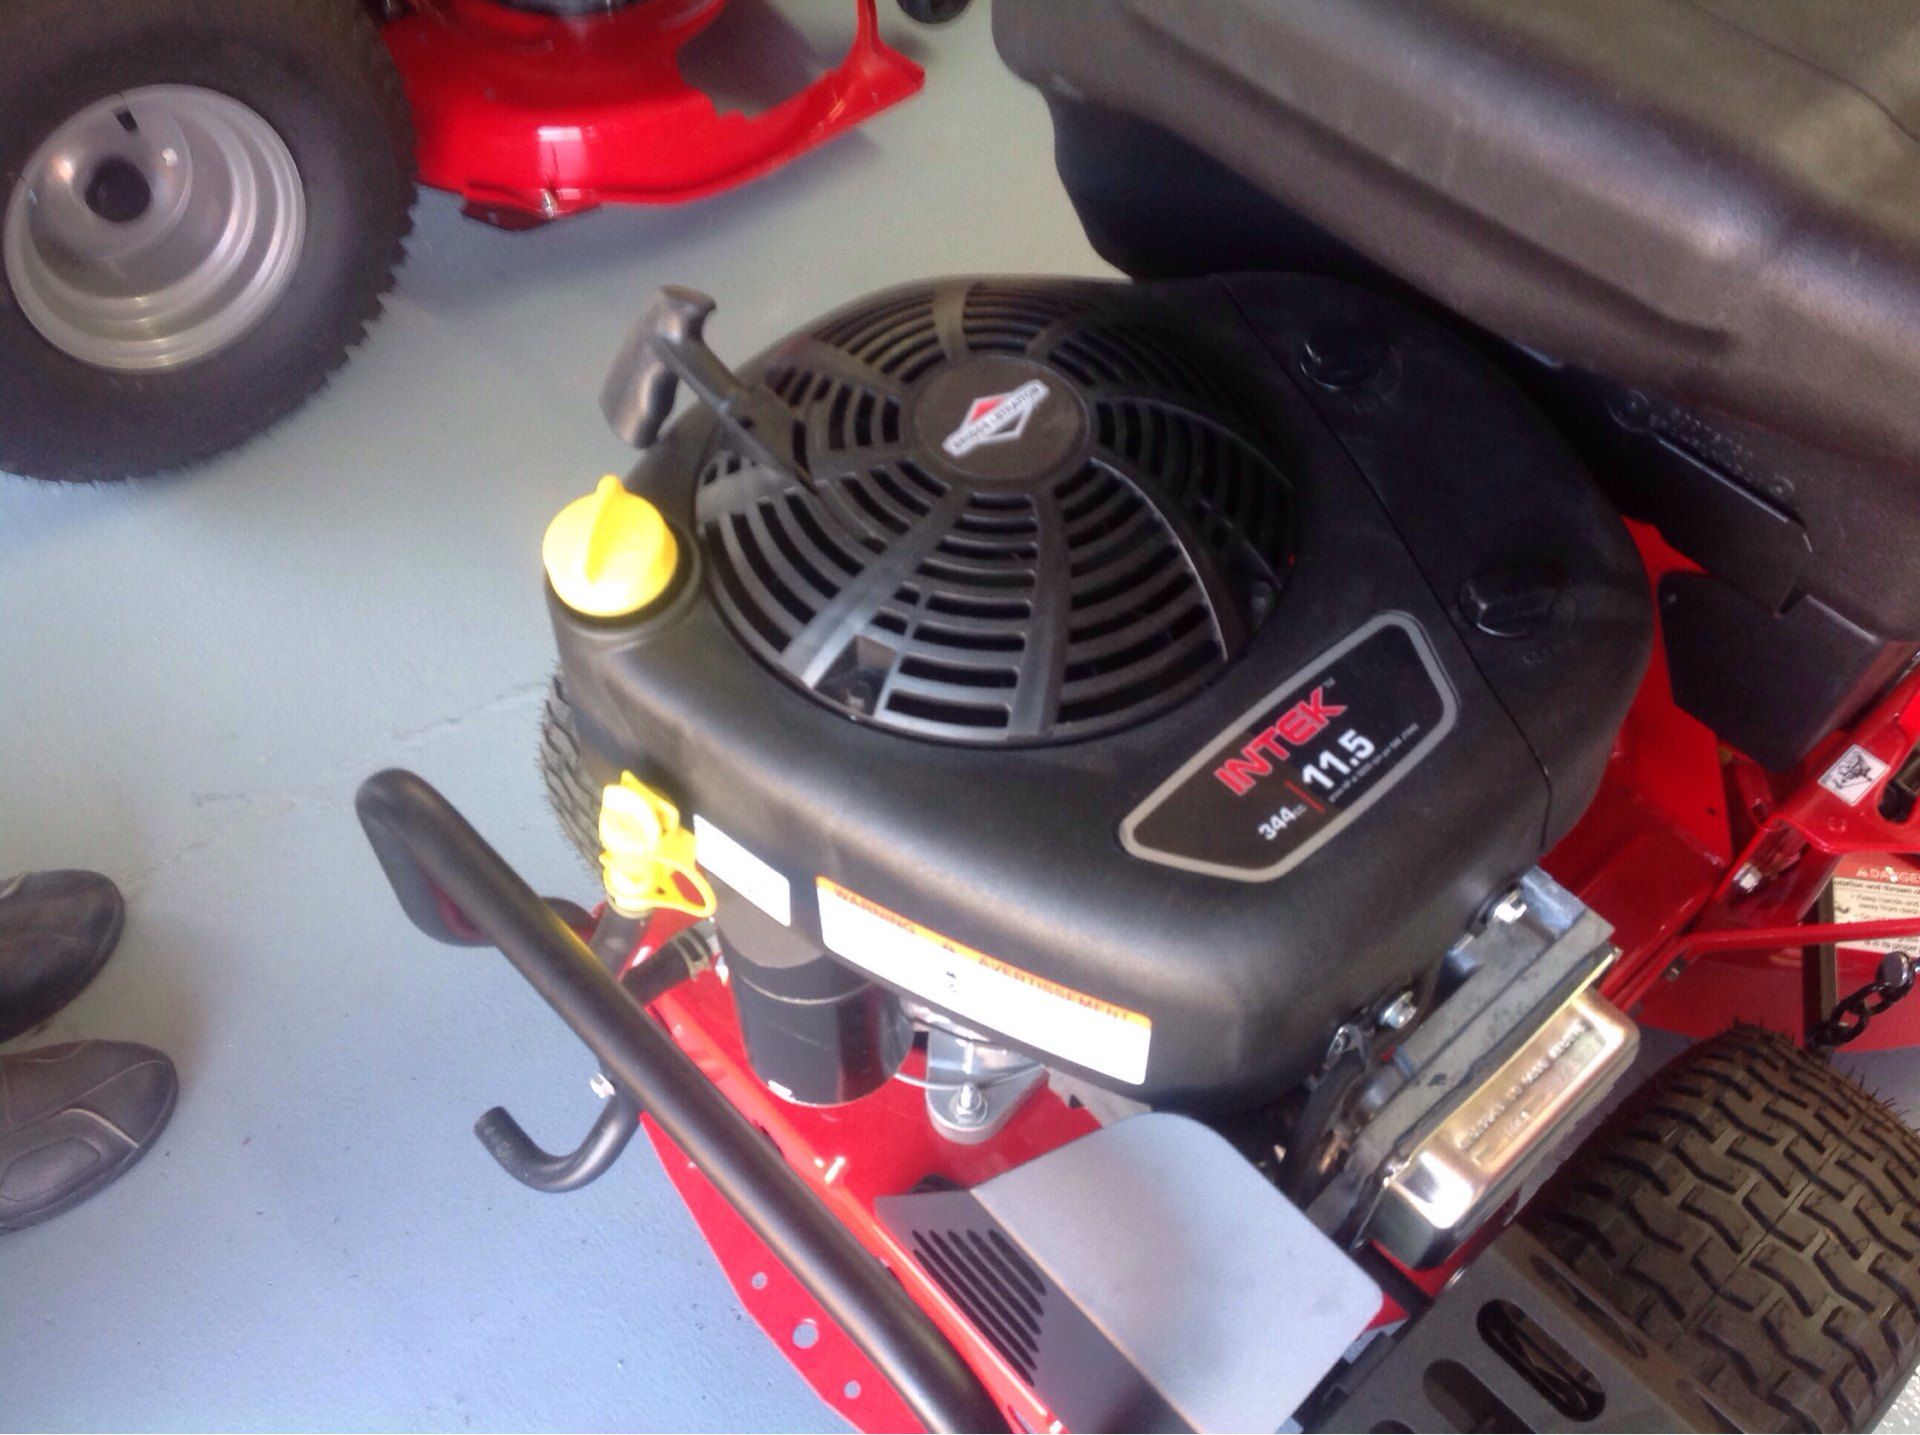 2019 Snapper 2811525BVE Rear Engine Rider 28 in. Briggs & Stratton 11.5 hp in Lafayette, Indiana - Photo 3